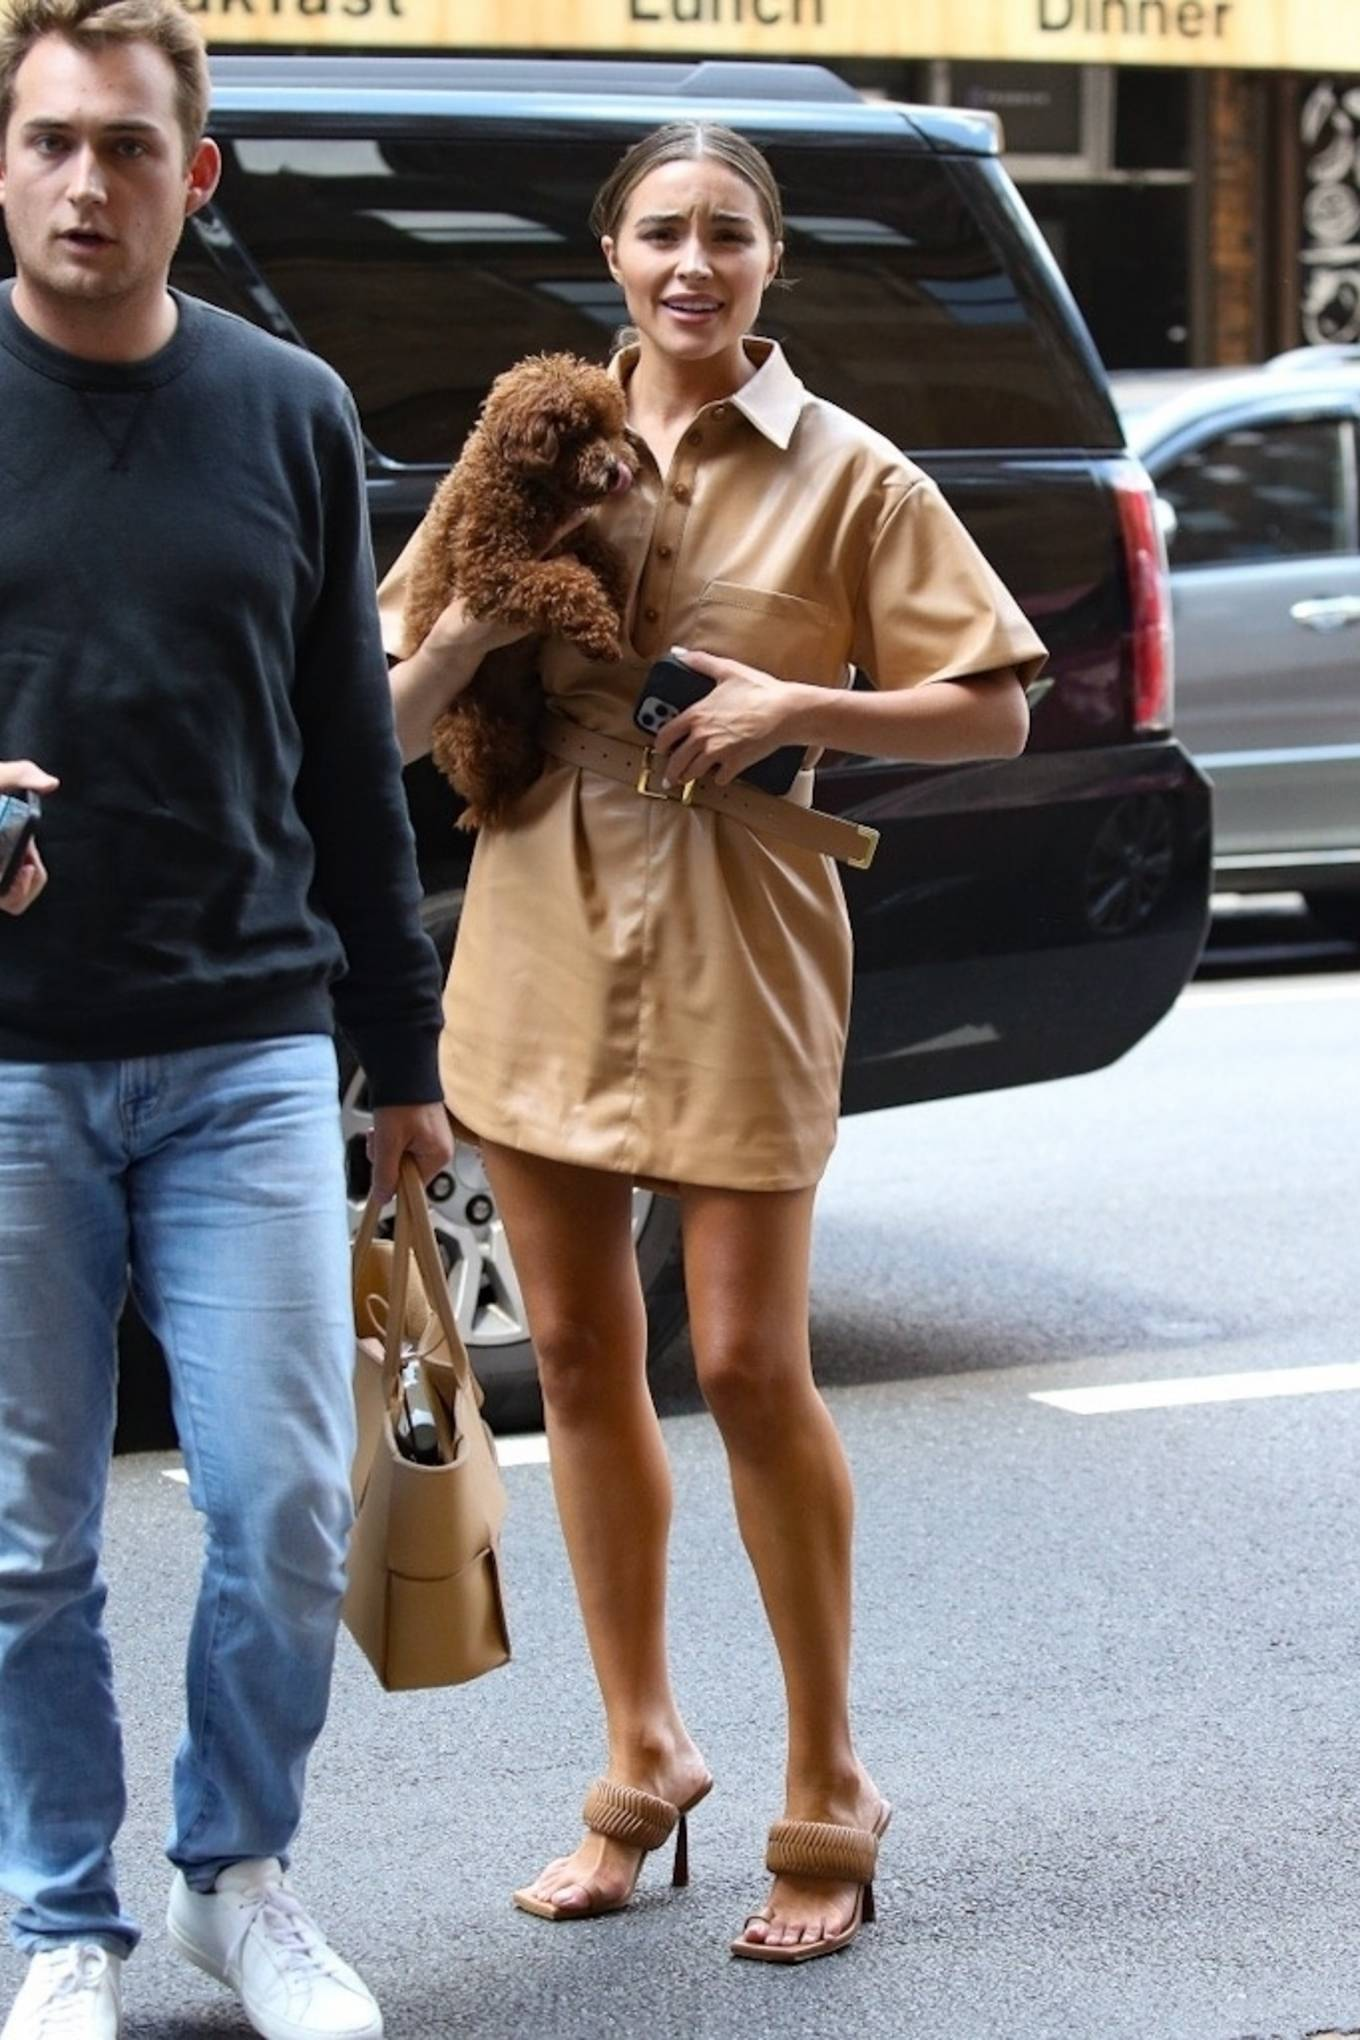 Olivia Culpo rocking square beige Gia Couture slip on sandals with interwoven strap detailing